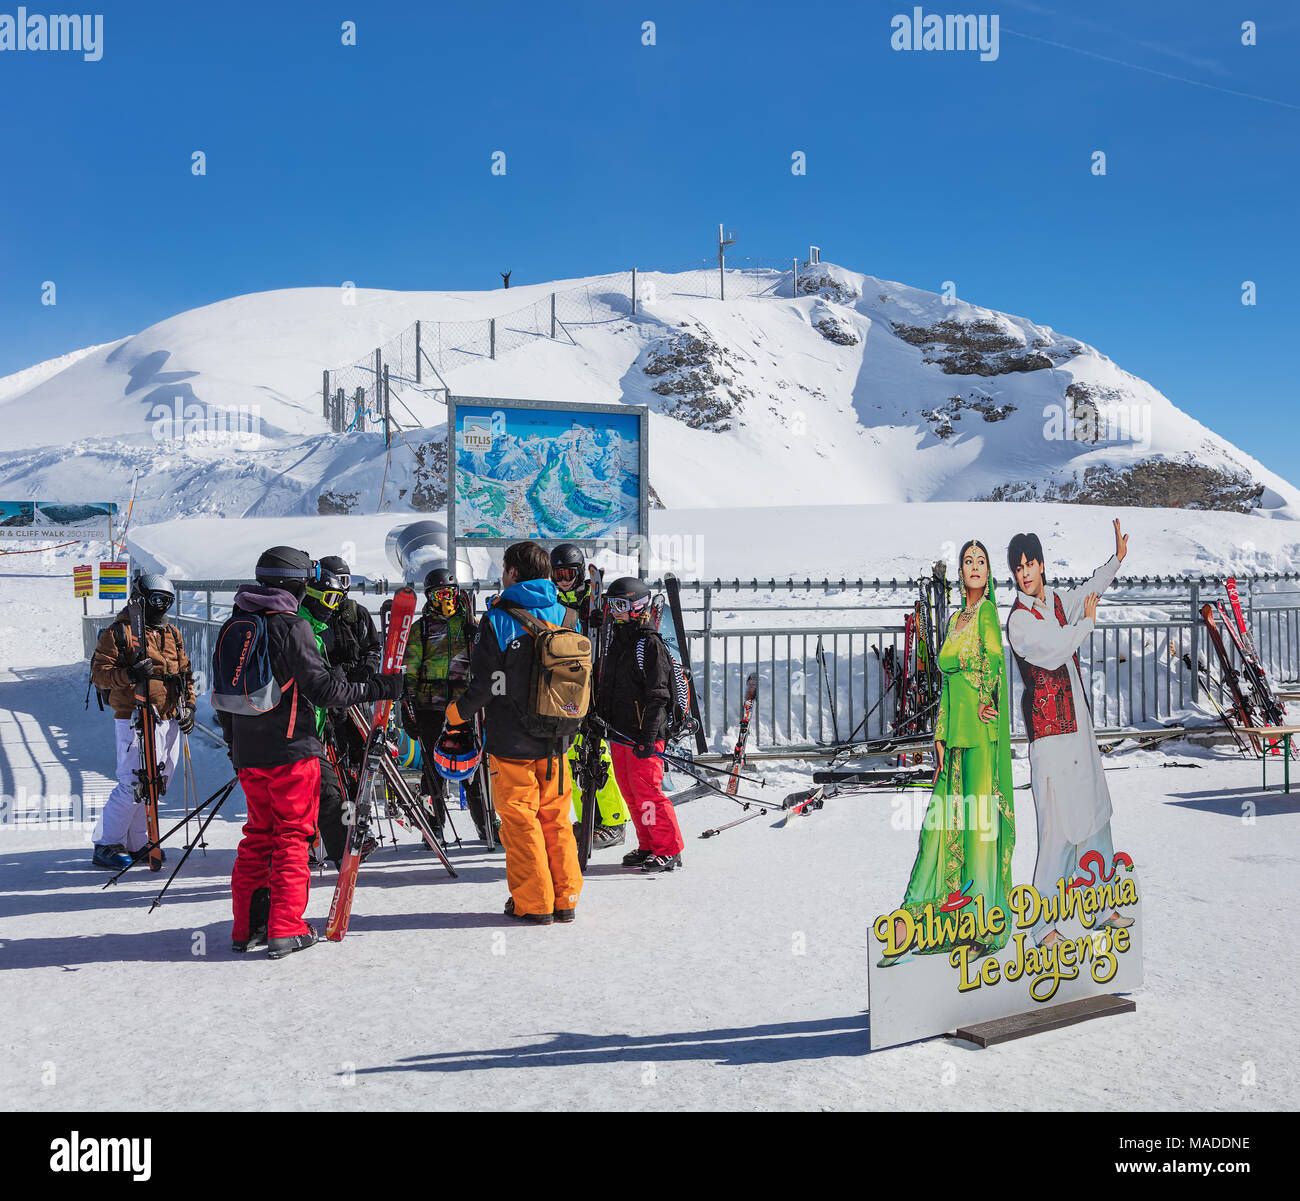 Engelberg, Switzerland - 9 March, 2016: a group of skiers on the top of the Mt. Titlis. The Titlis is a mountain located on the border between the Swi - Stock Image